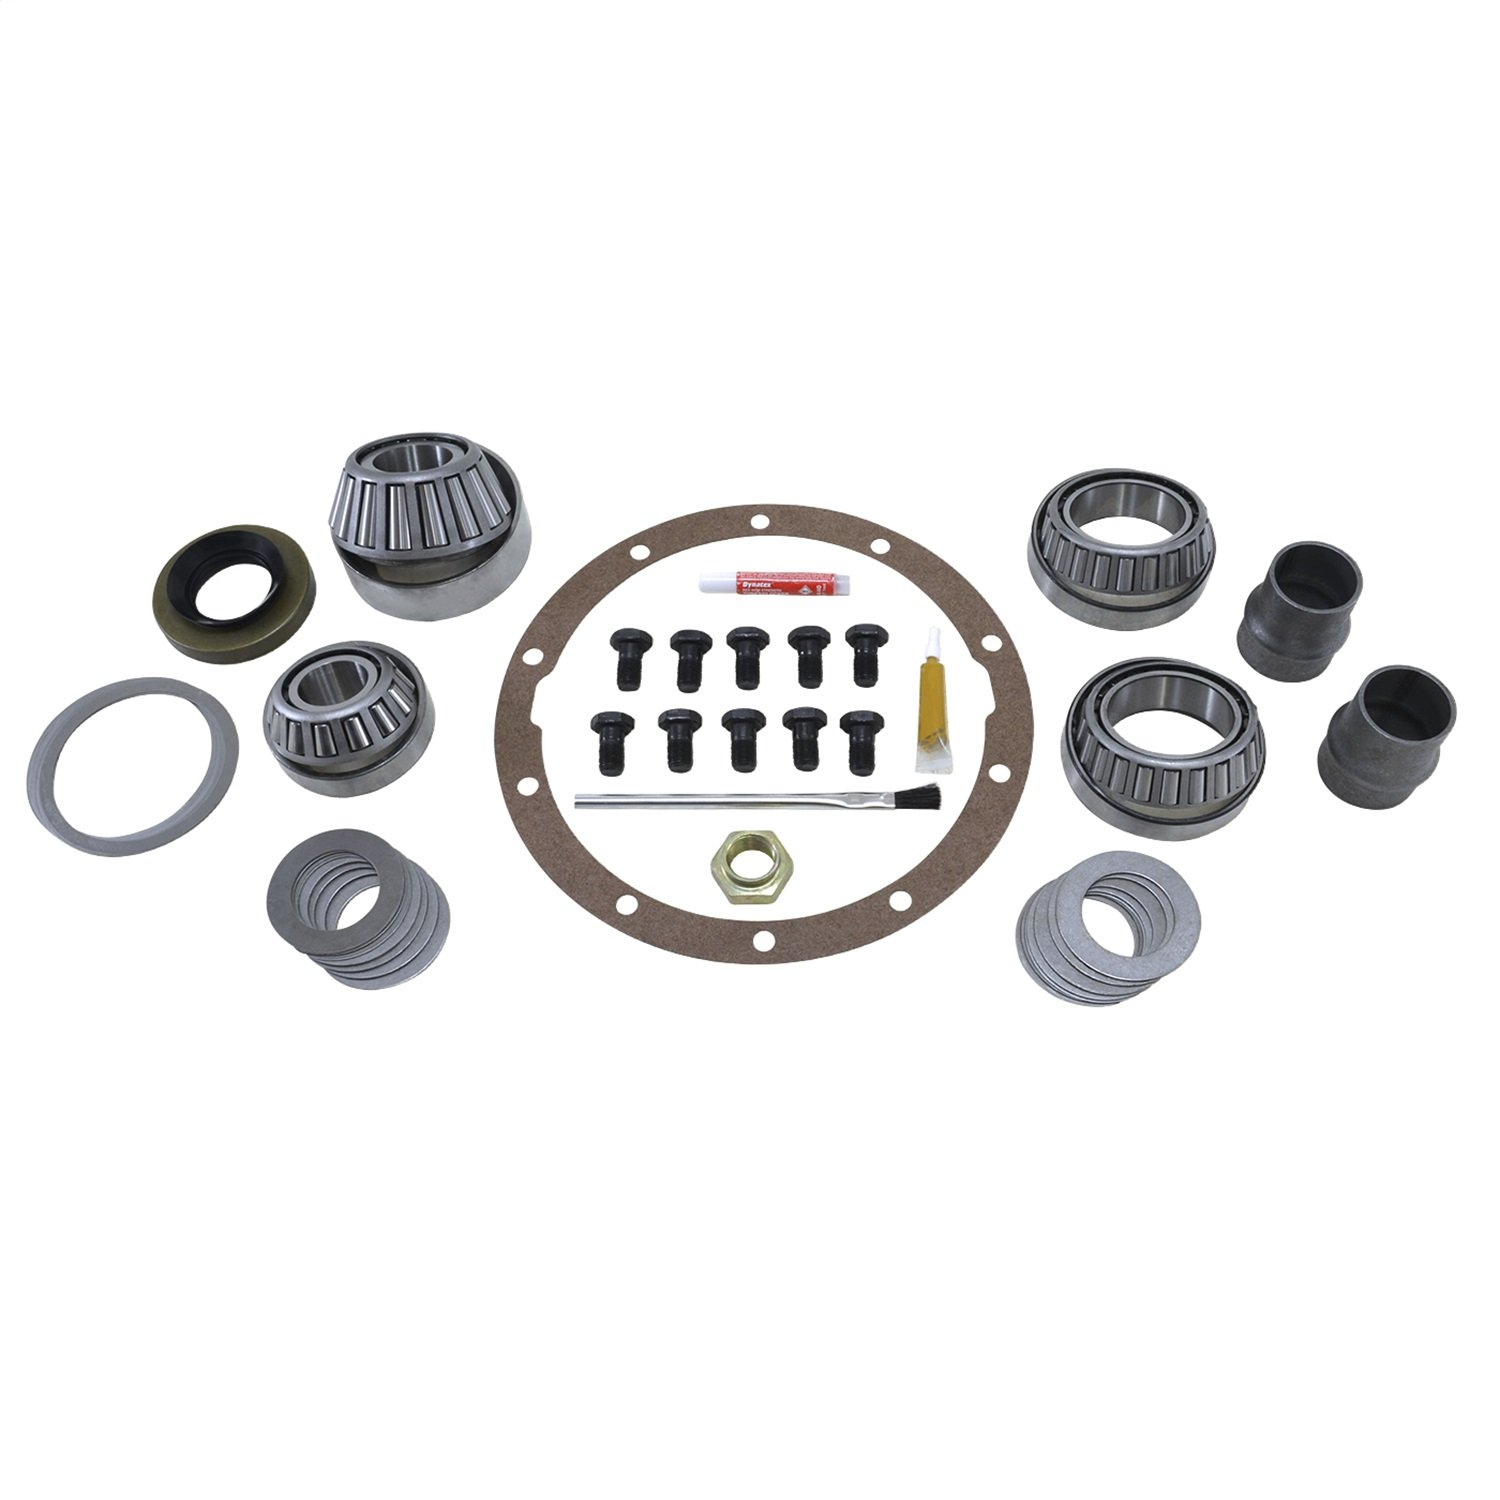 Master Overhaul Kit for Toyota V6//Turbo 4 differential ZK TV6 USA Standard Gear